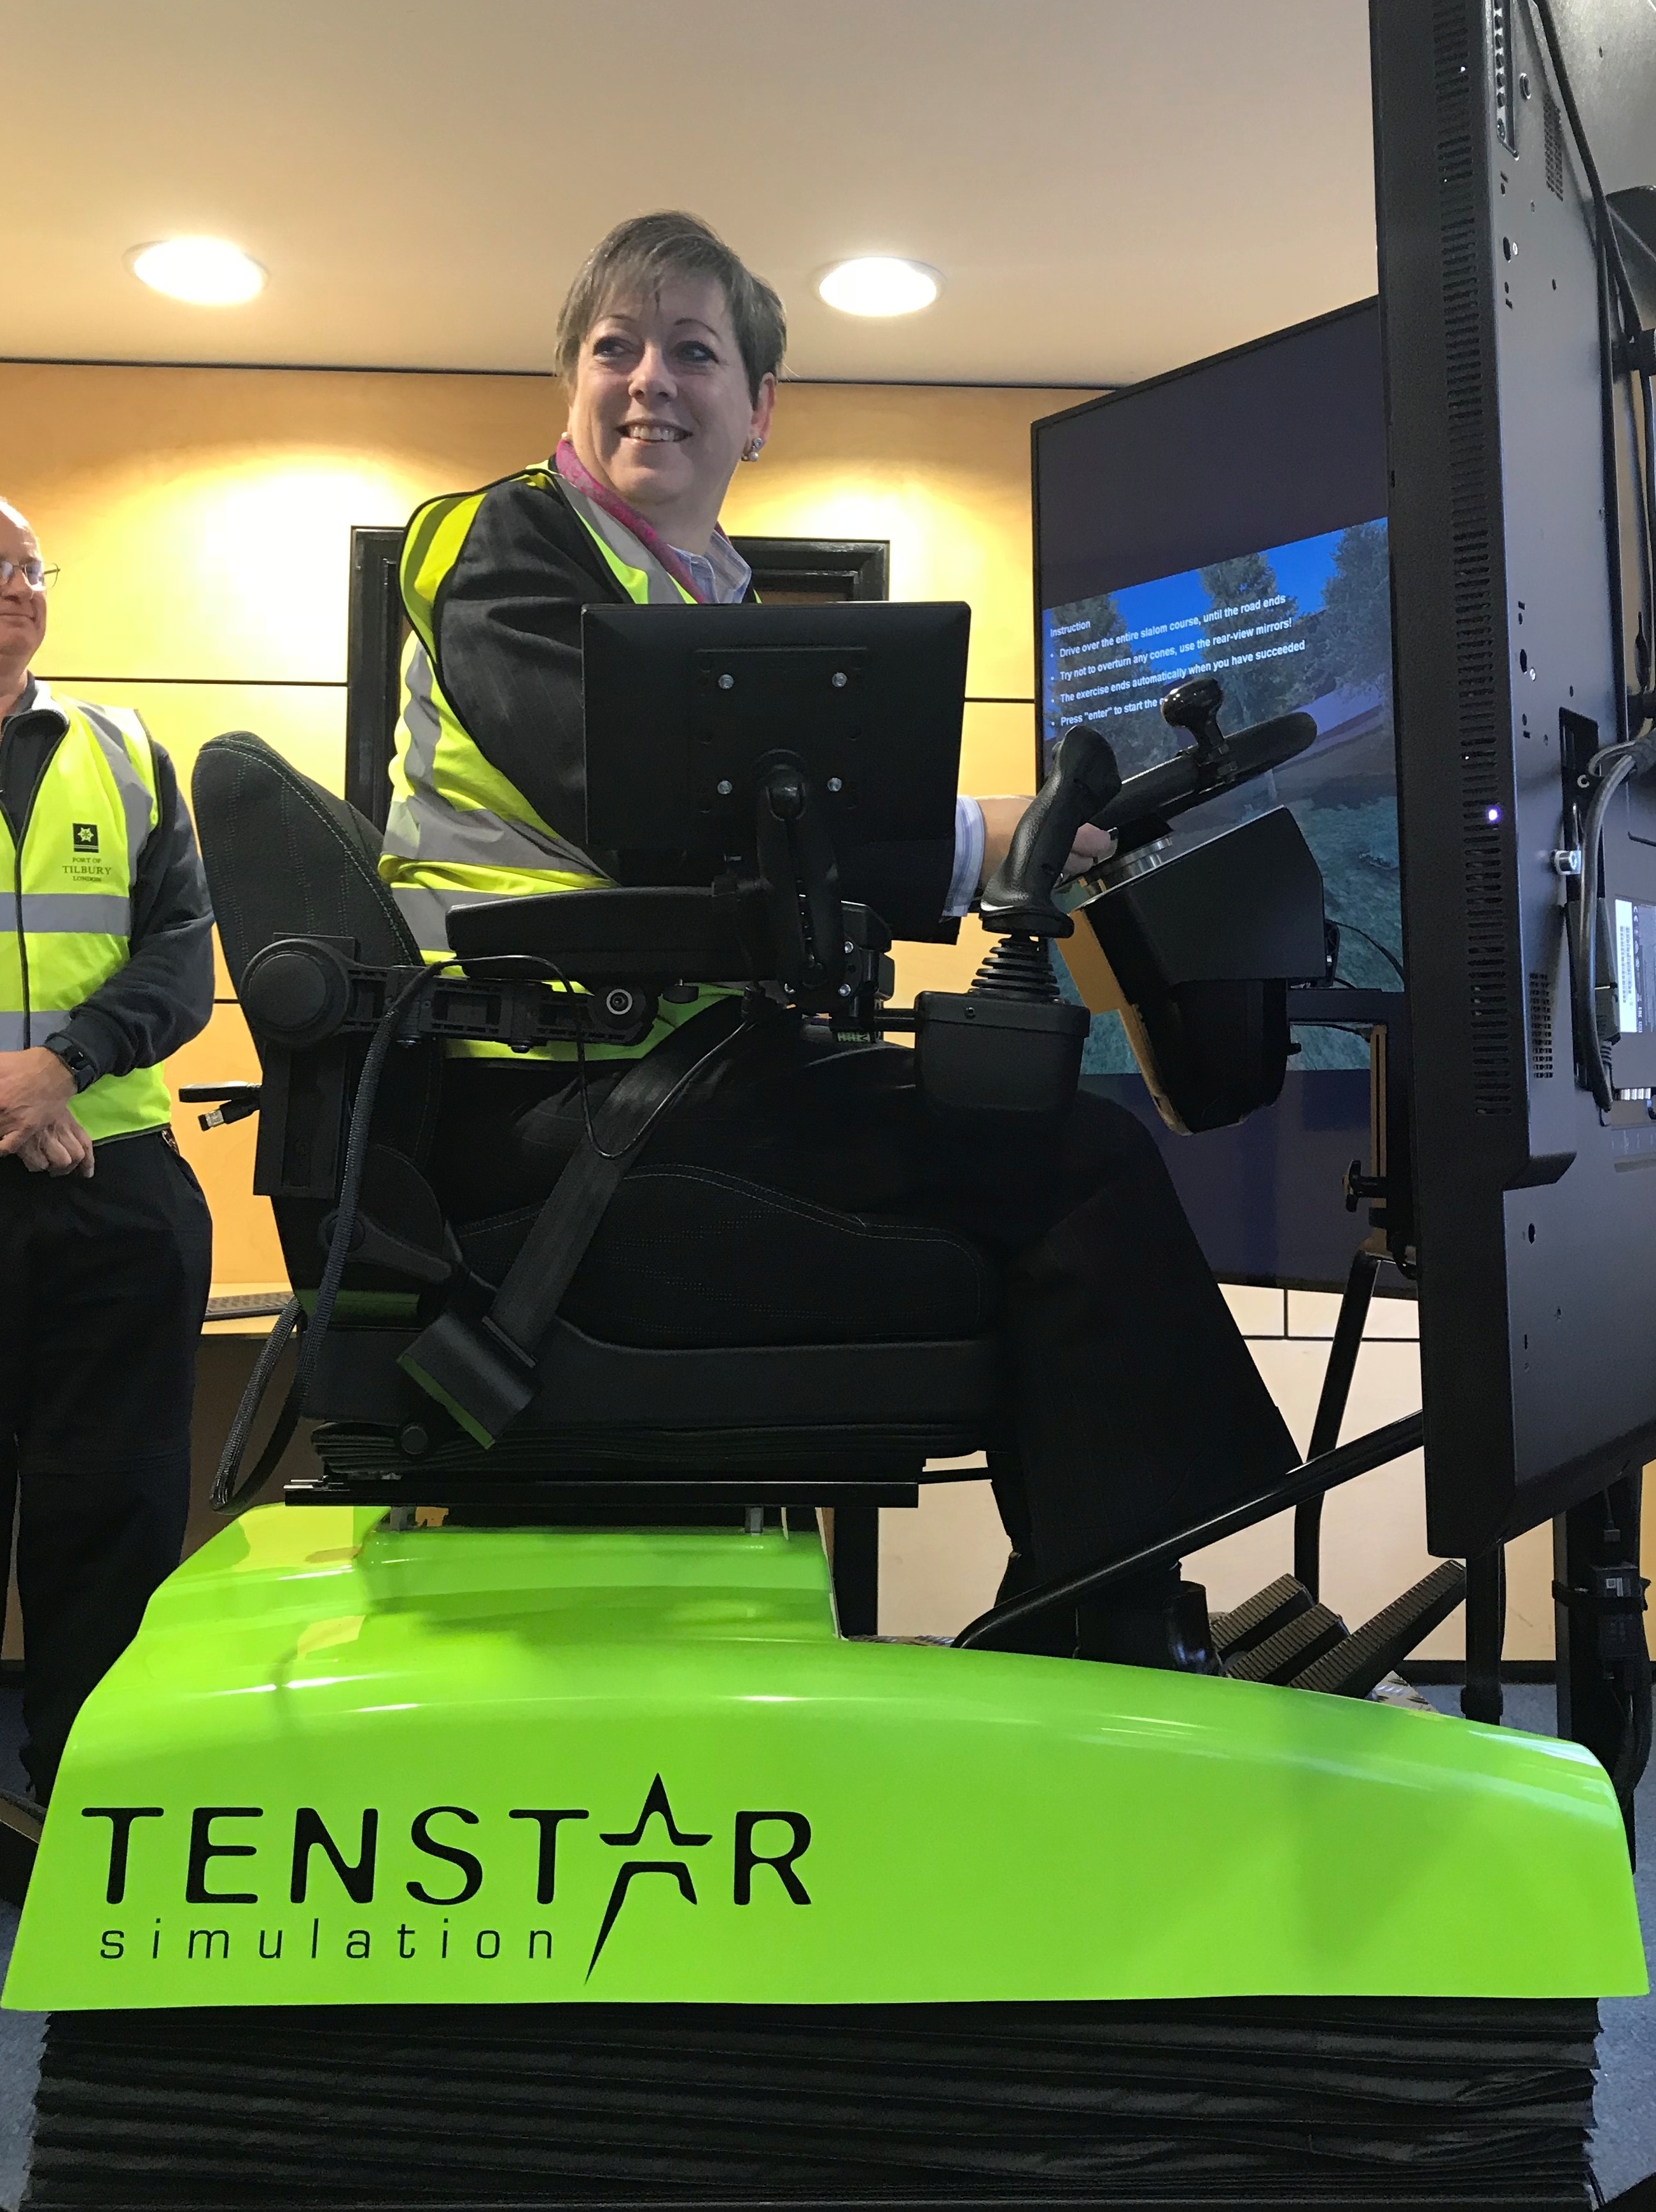 State of the art 'fully immersive' training simulator welcomed across the quayside at Port of Tilbury.